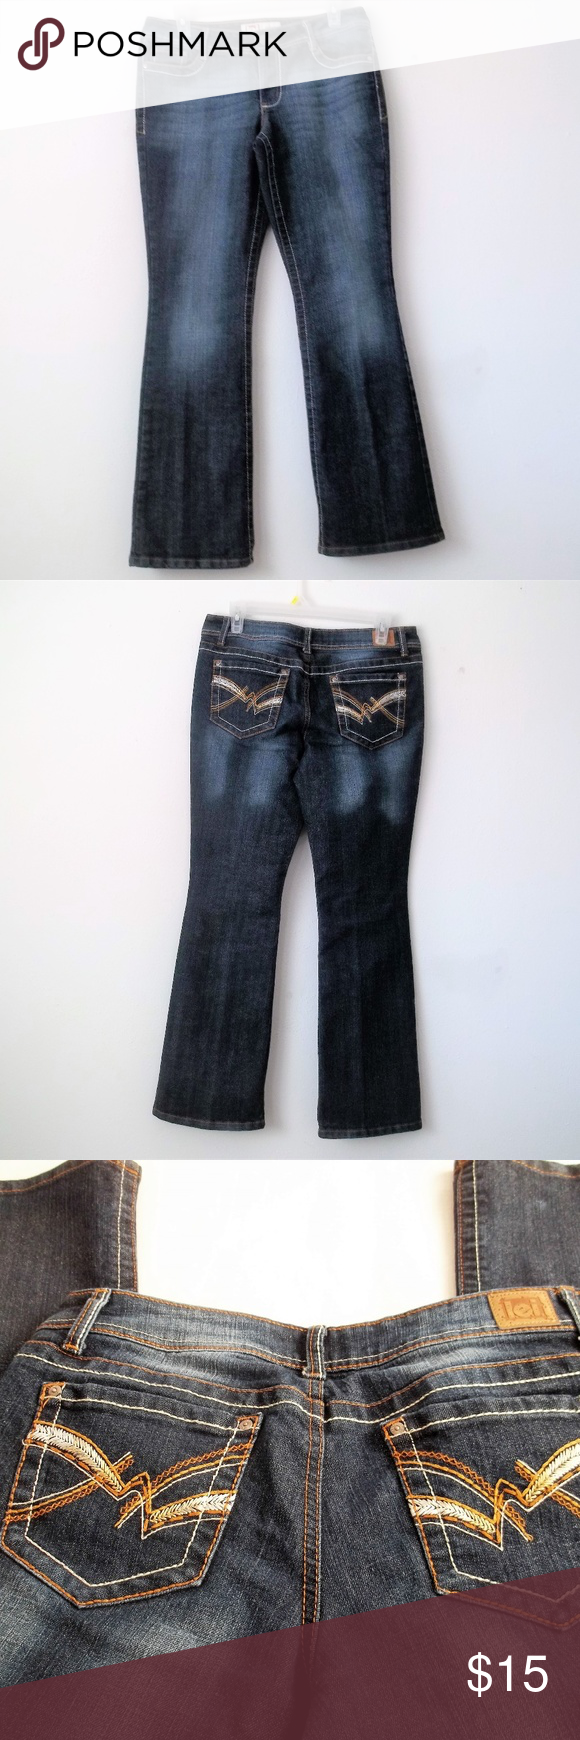 l.e.i Jeans l.e.i Jeans. Size 9 short. 32 inch waist. 38 inches long. 29 inch inseam. front rise 9 inches. back ris…   Jeans and boots. Clothes ...